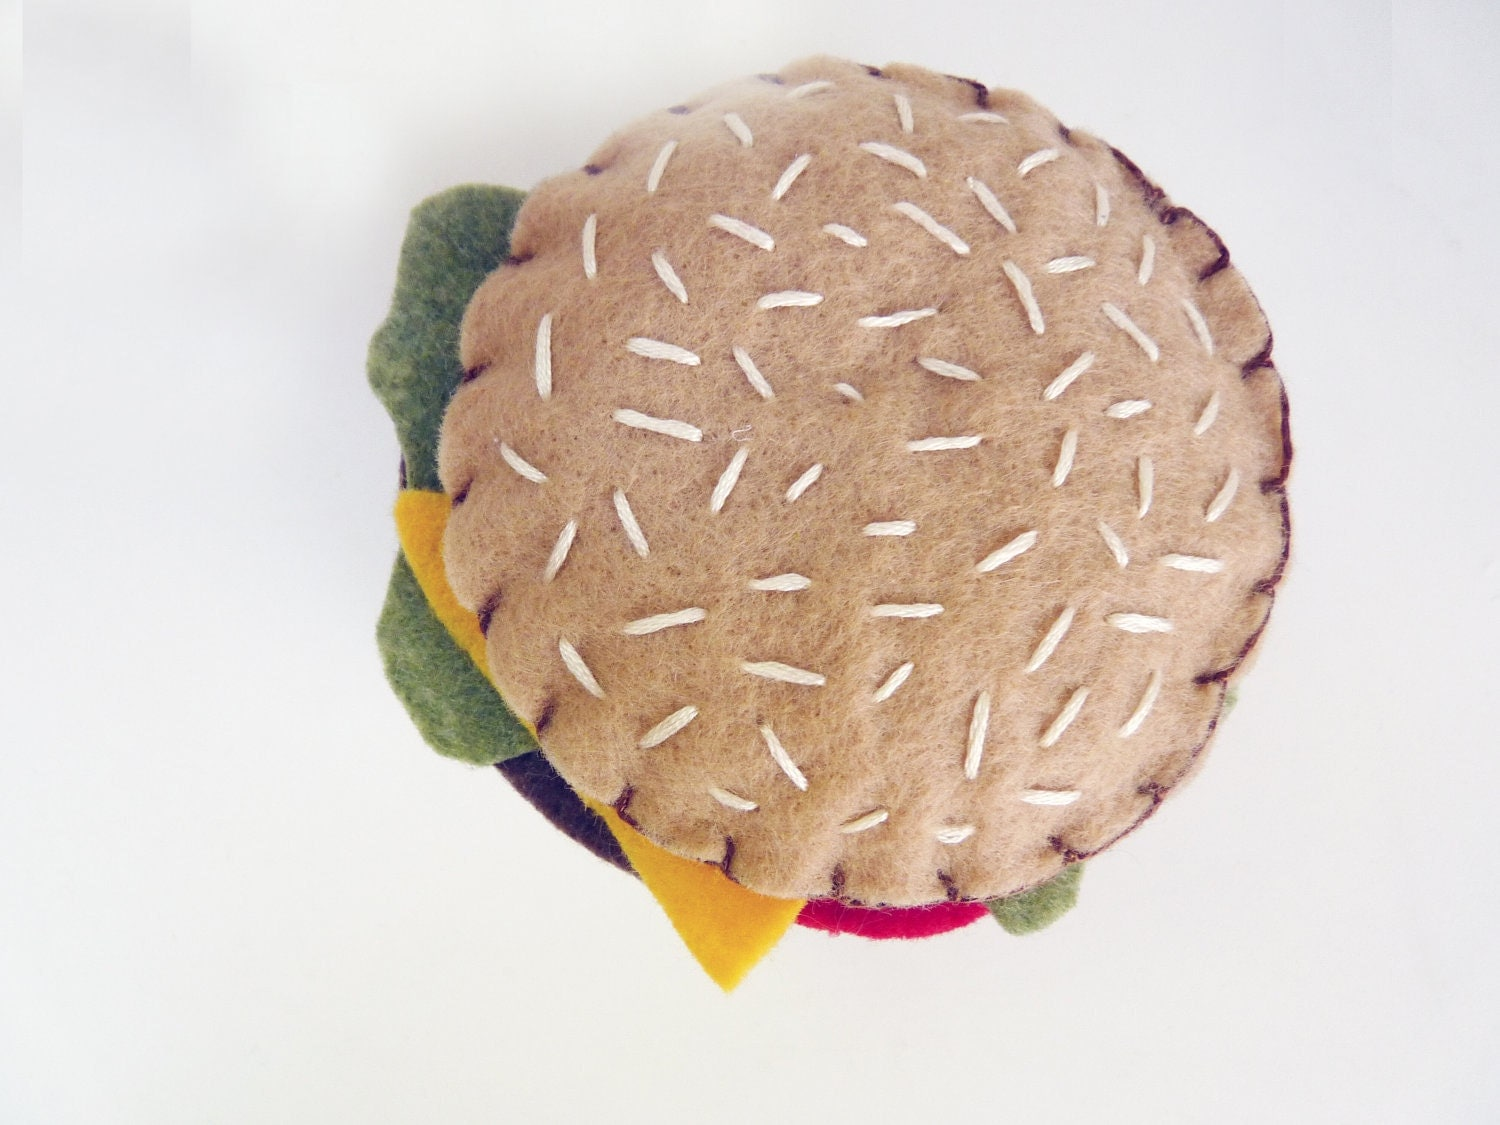 Fia's Burger - Handsewn Felt Plush Hamburger - Perfect for Summer, Birthdays, Any Occassion